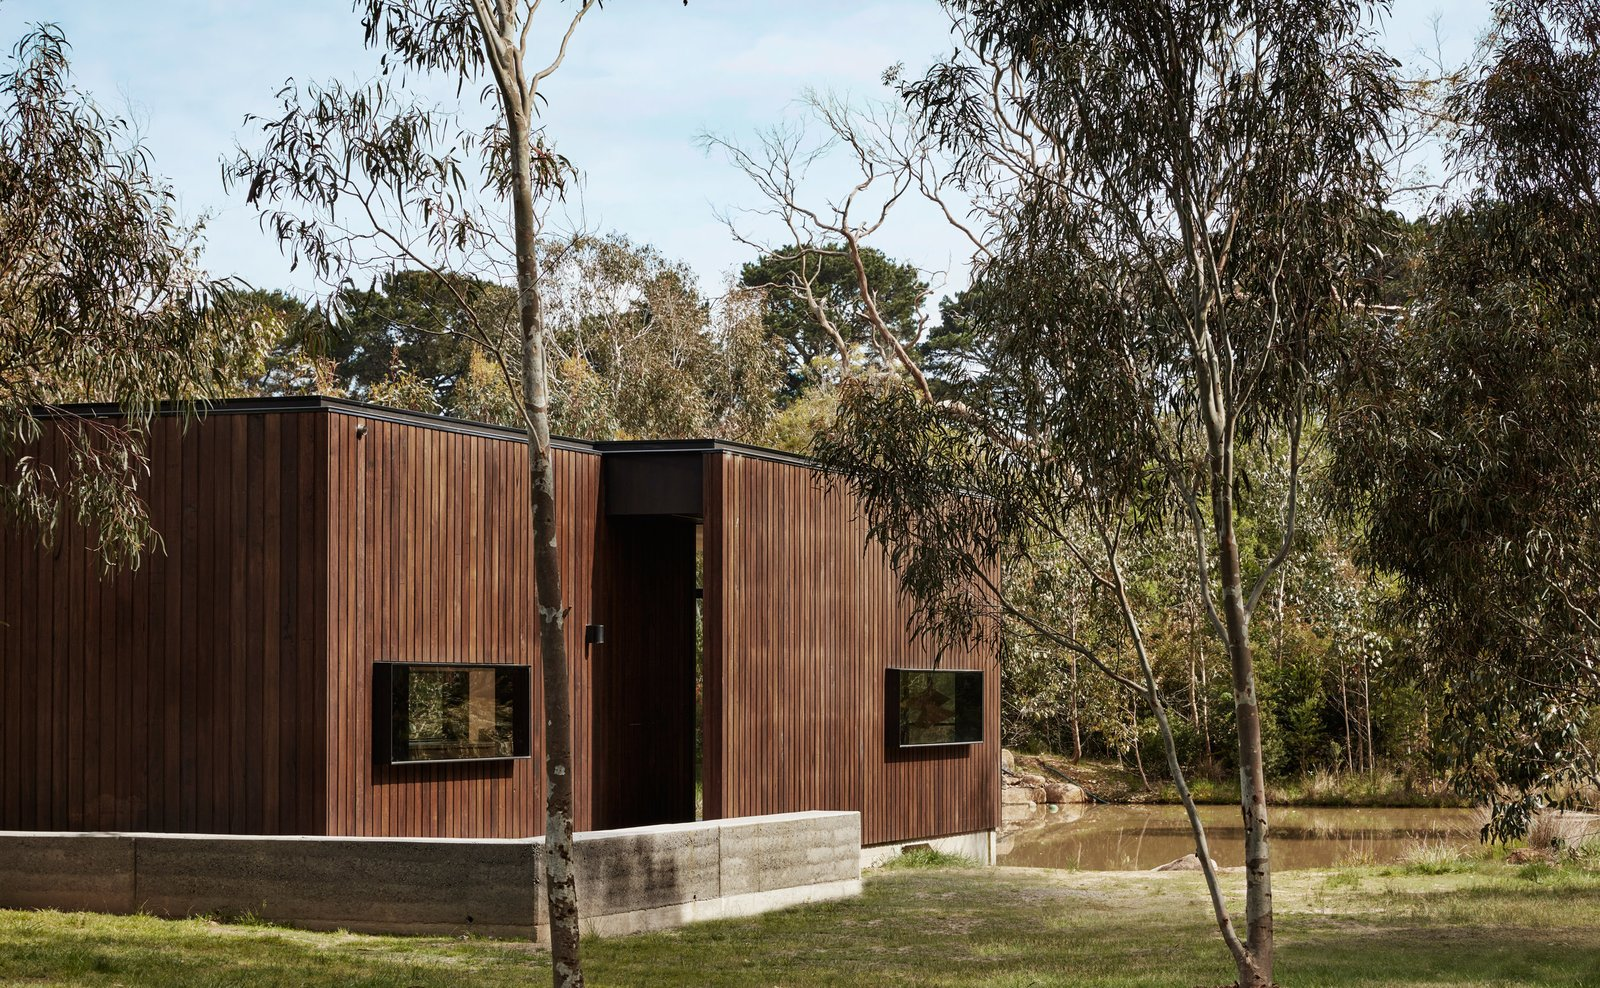 Photo 9 of 9 in Balnarring Retreat by Branch Studio Architects